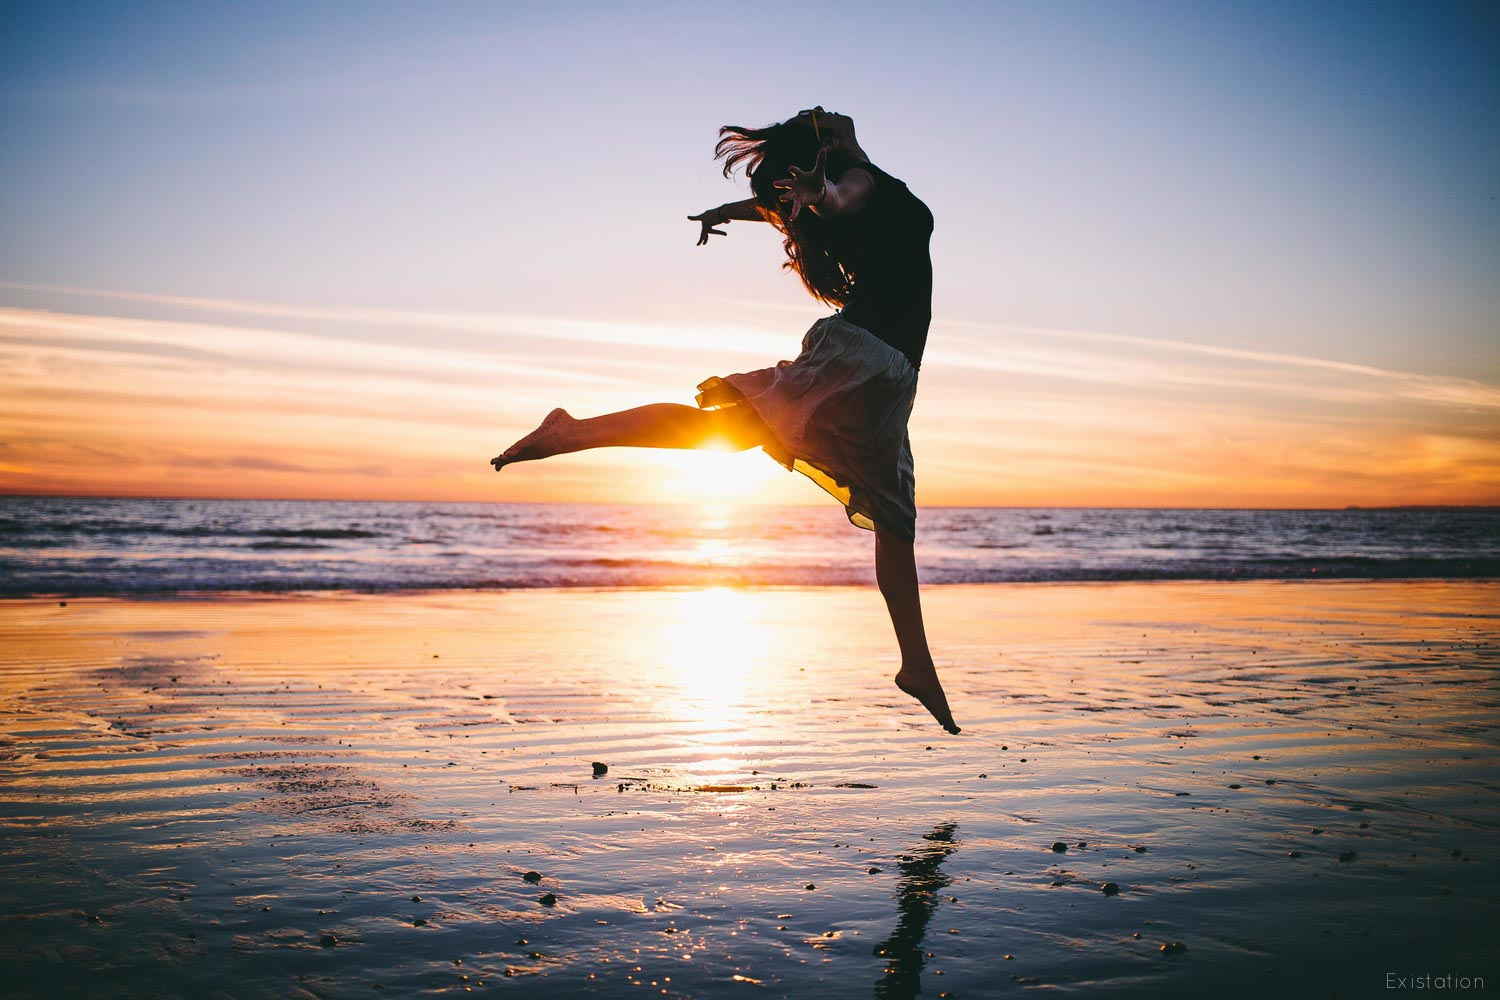 dancing+silhouette+sunset+beach+ocean.jpg